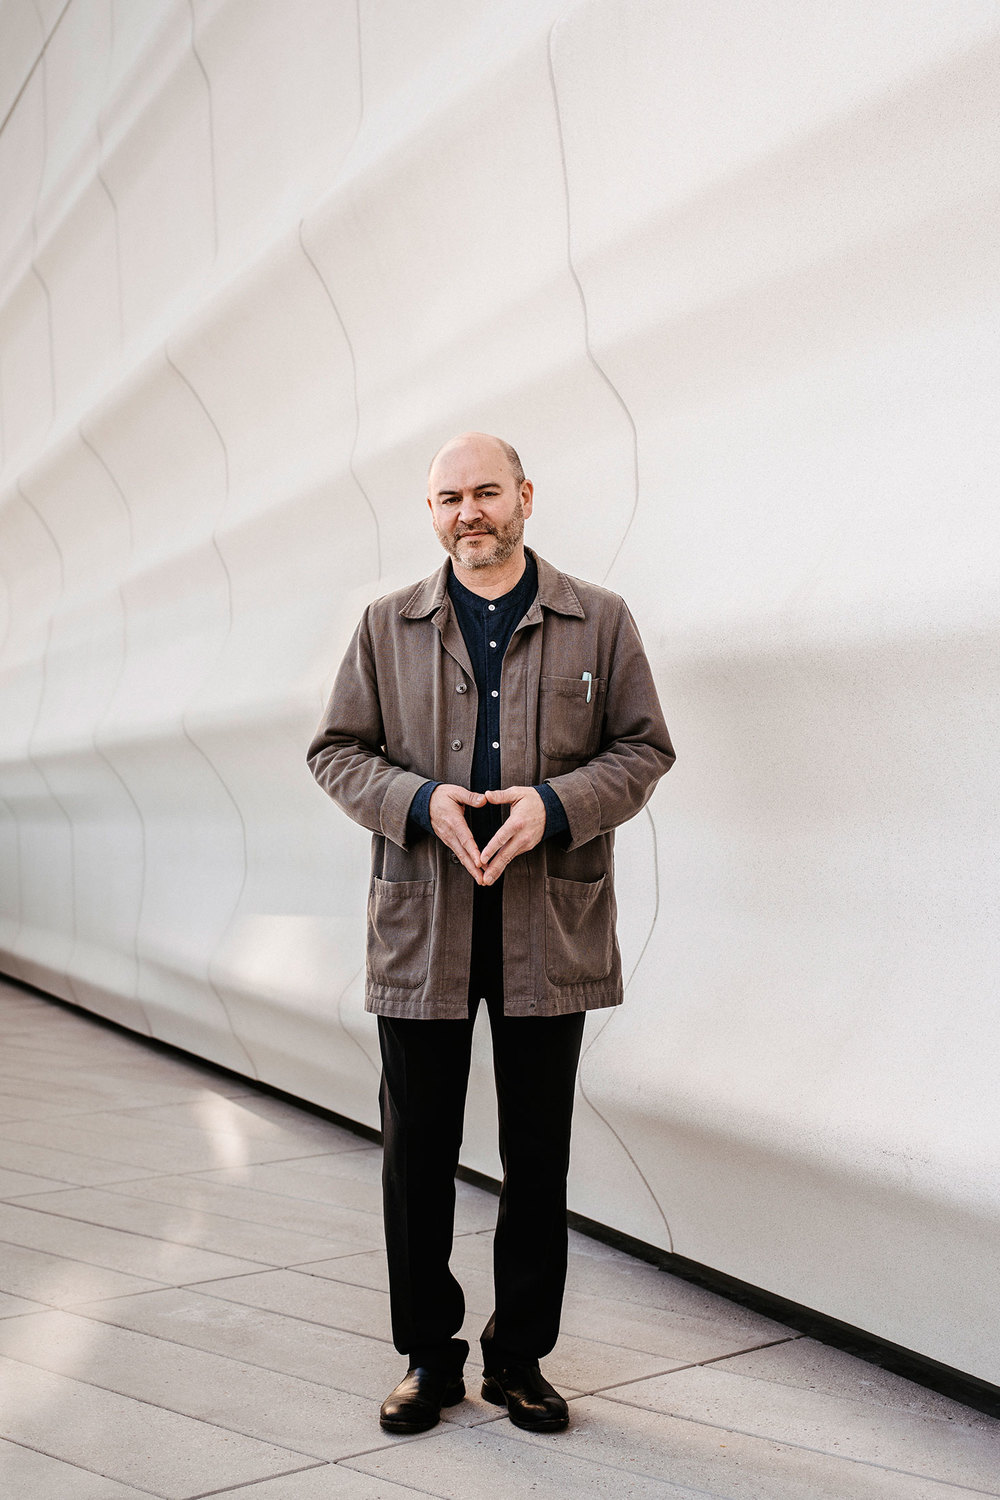 Craig Dykers at the new SFMOMA building. (Photo: Justin Kaneps/Surface)